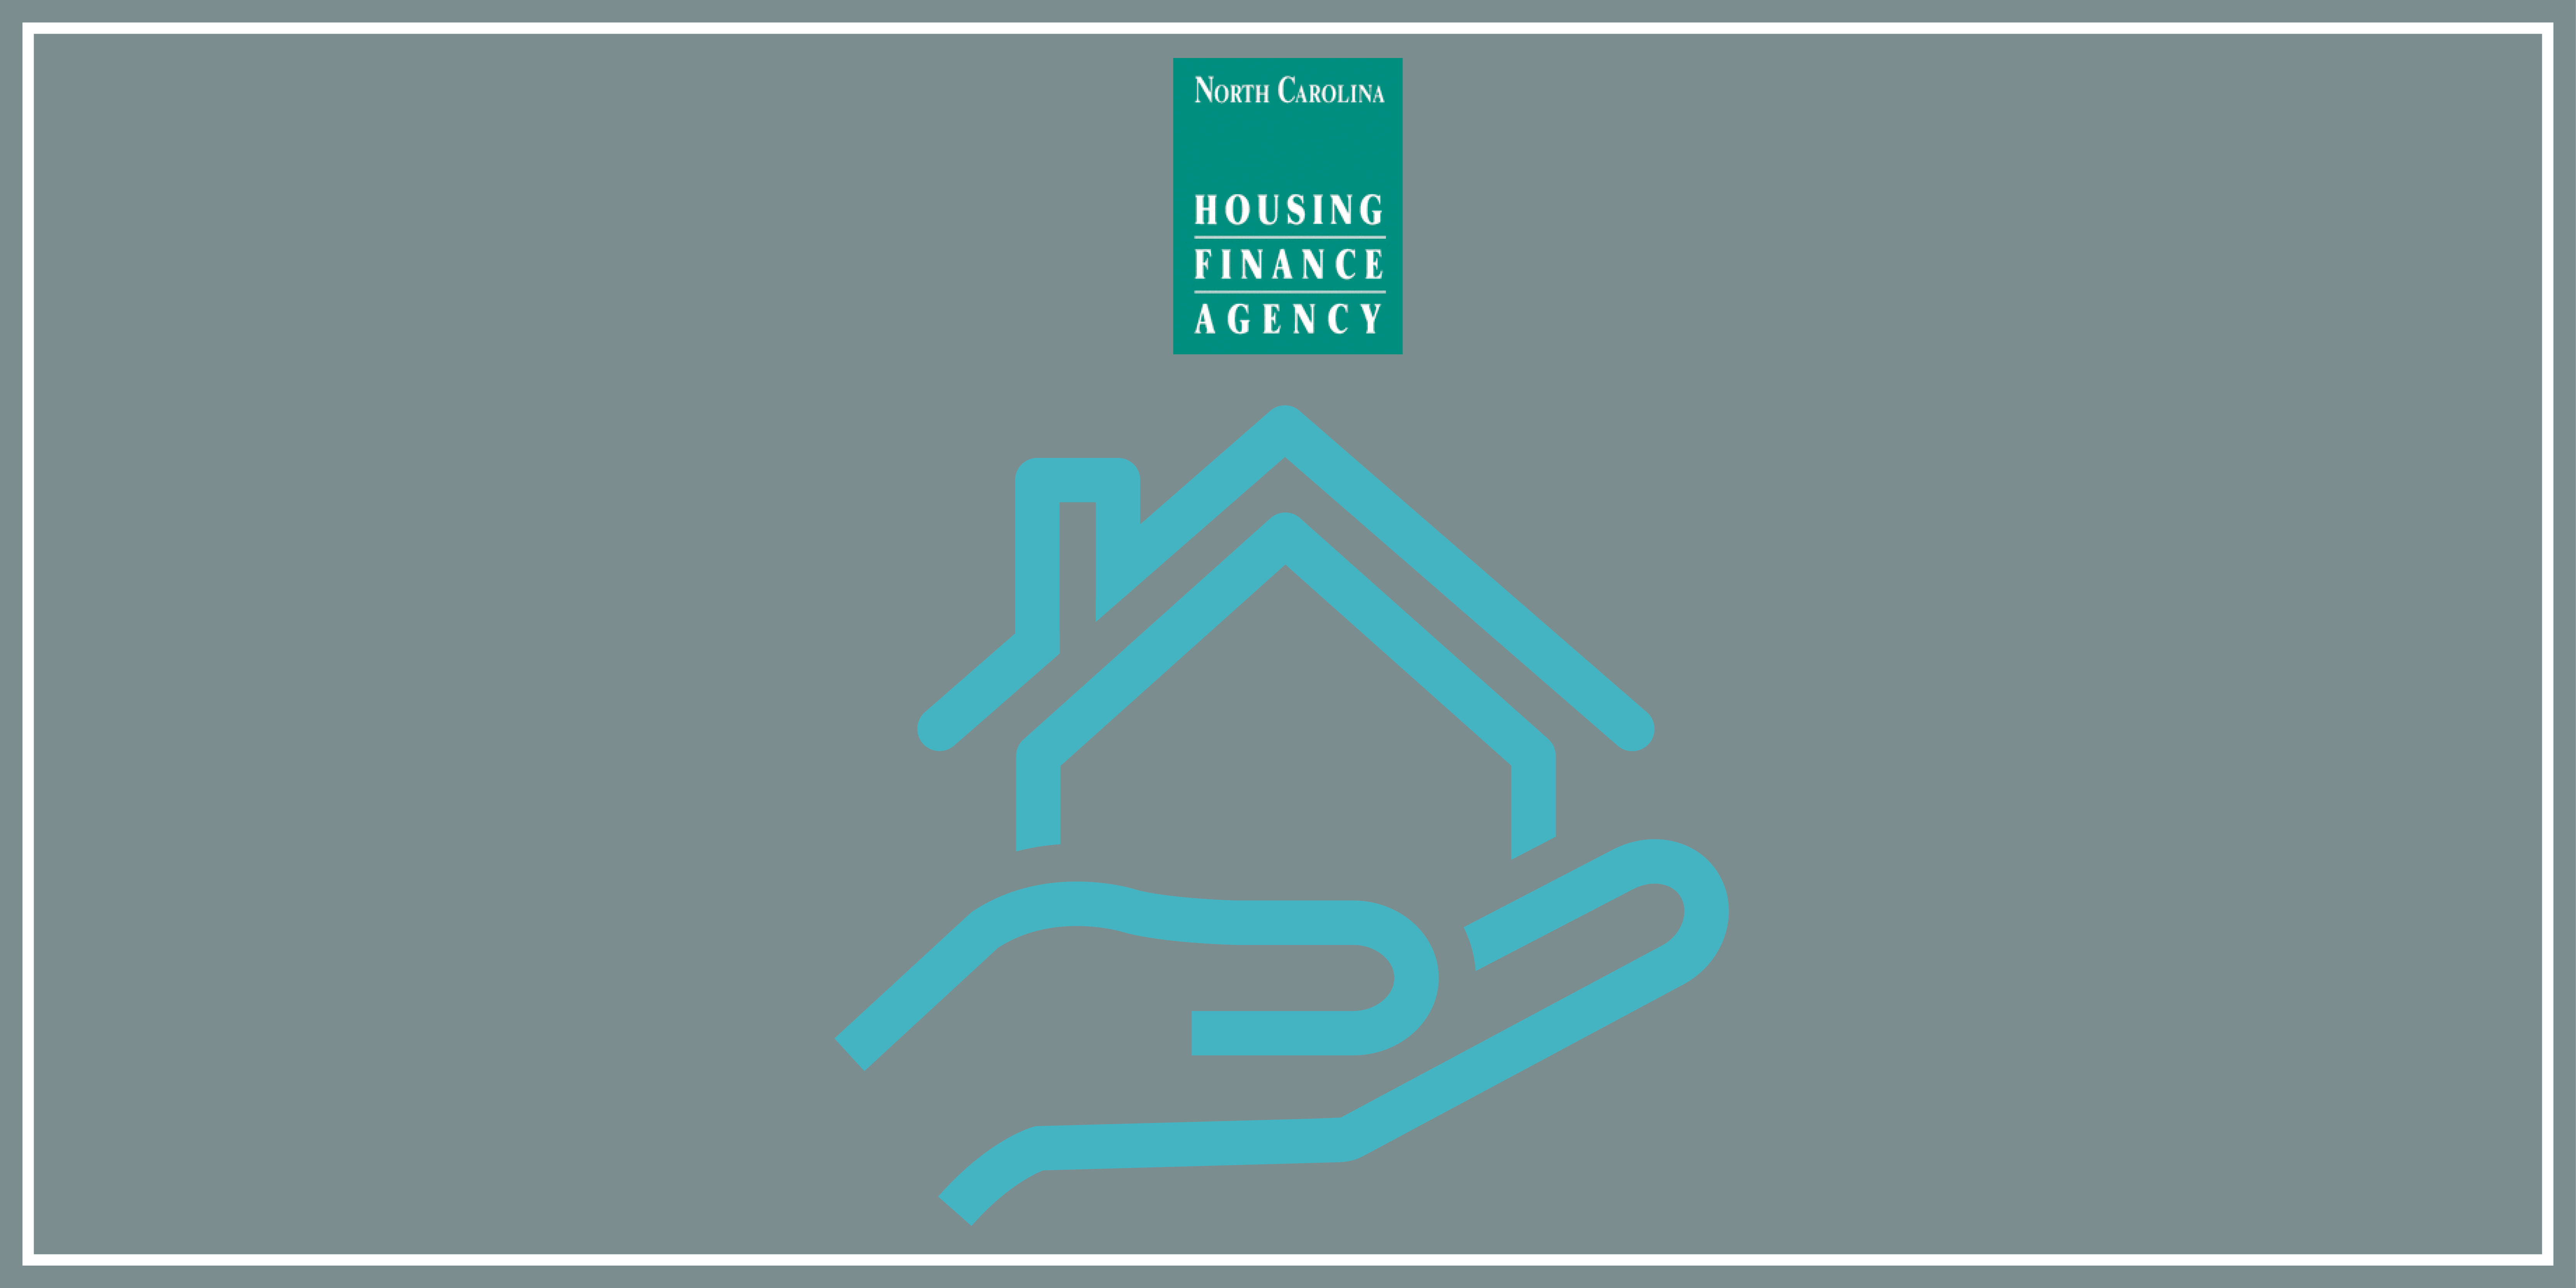 Blue hand holding a house graphic with Agency logo above